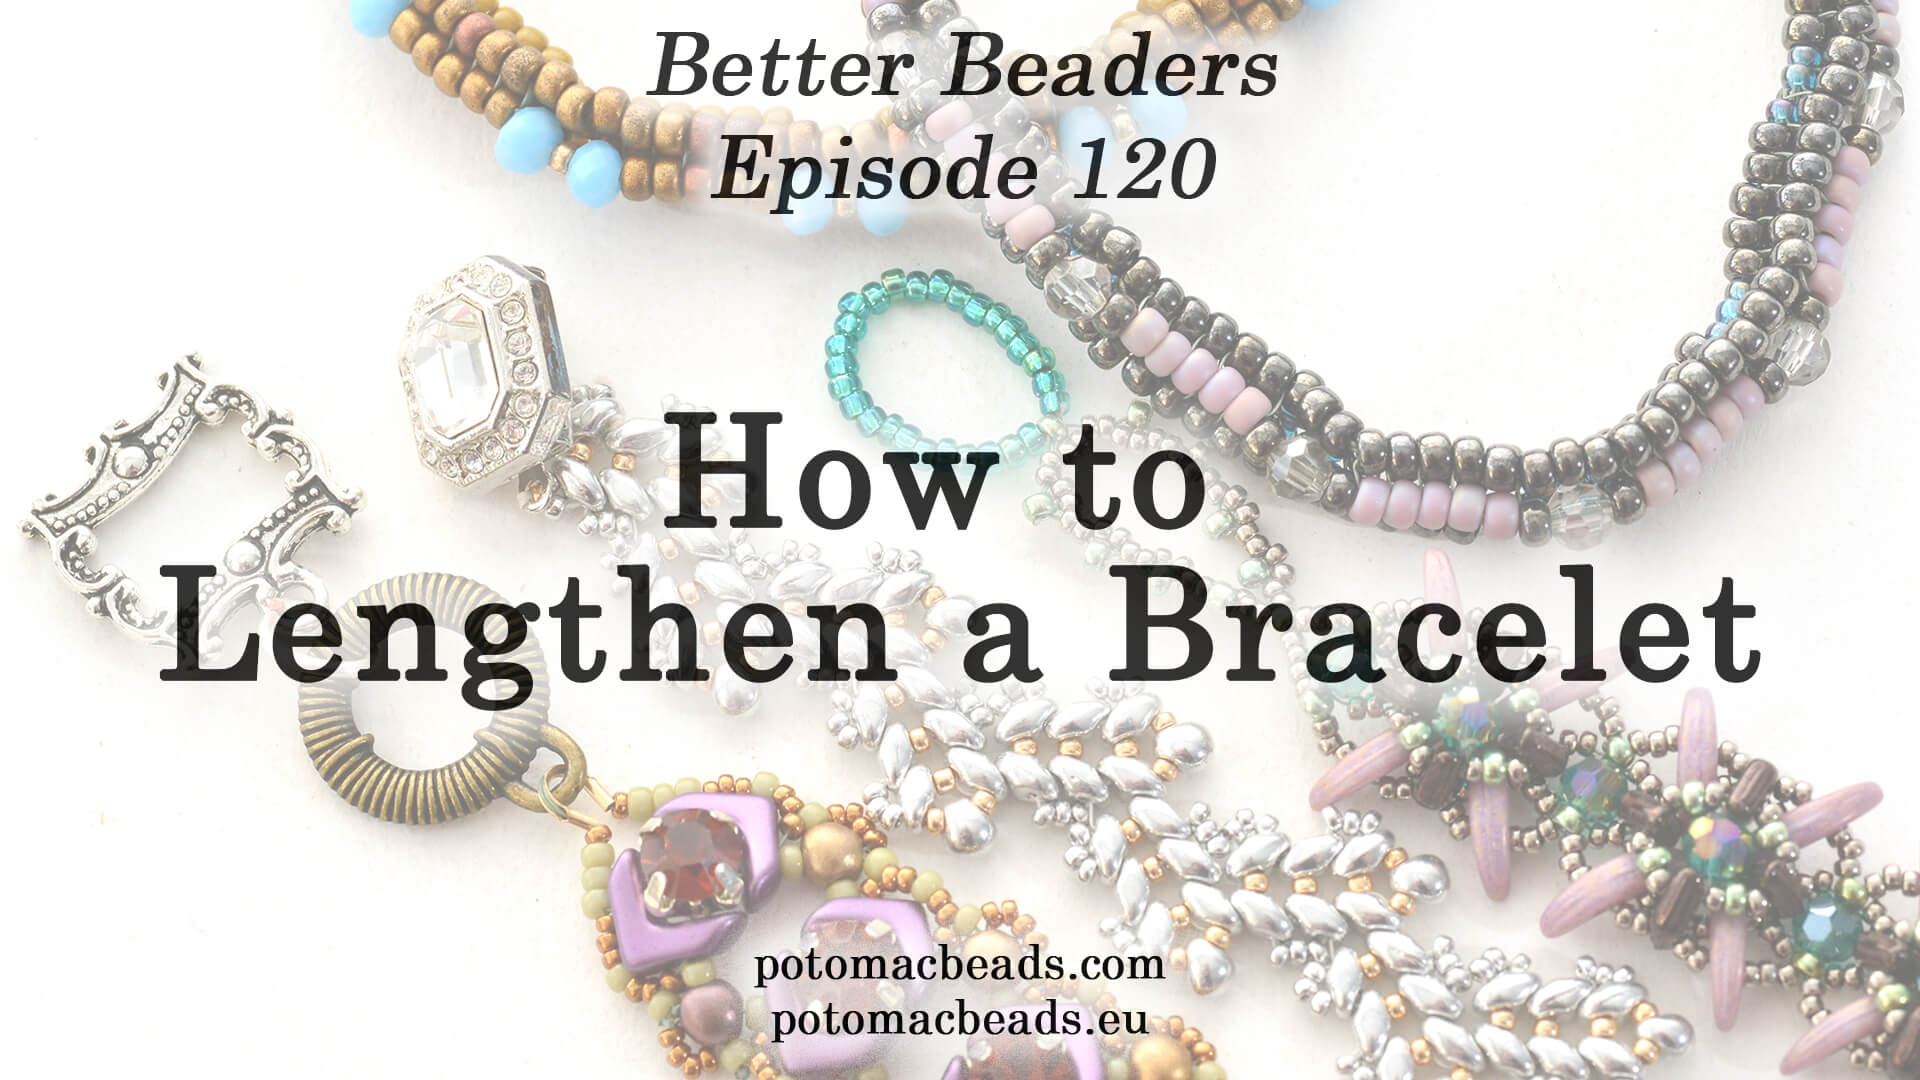 How to Bead / Better Beader Episodes / Better Beader Episode 120 - How to Lengthen a Bracelet